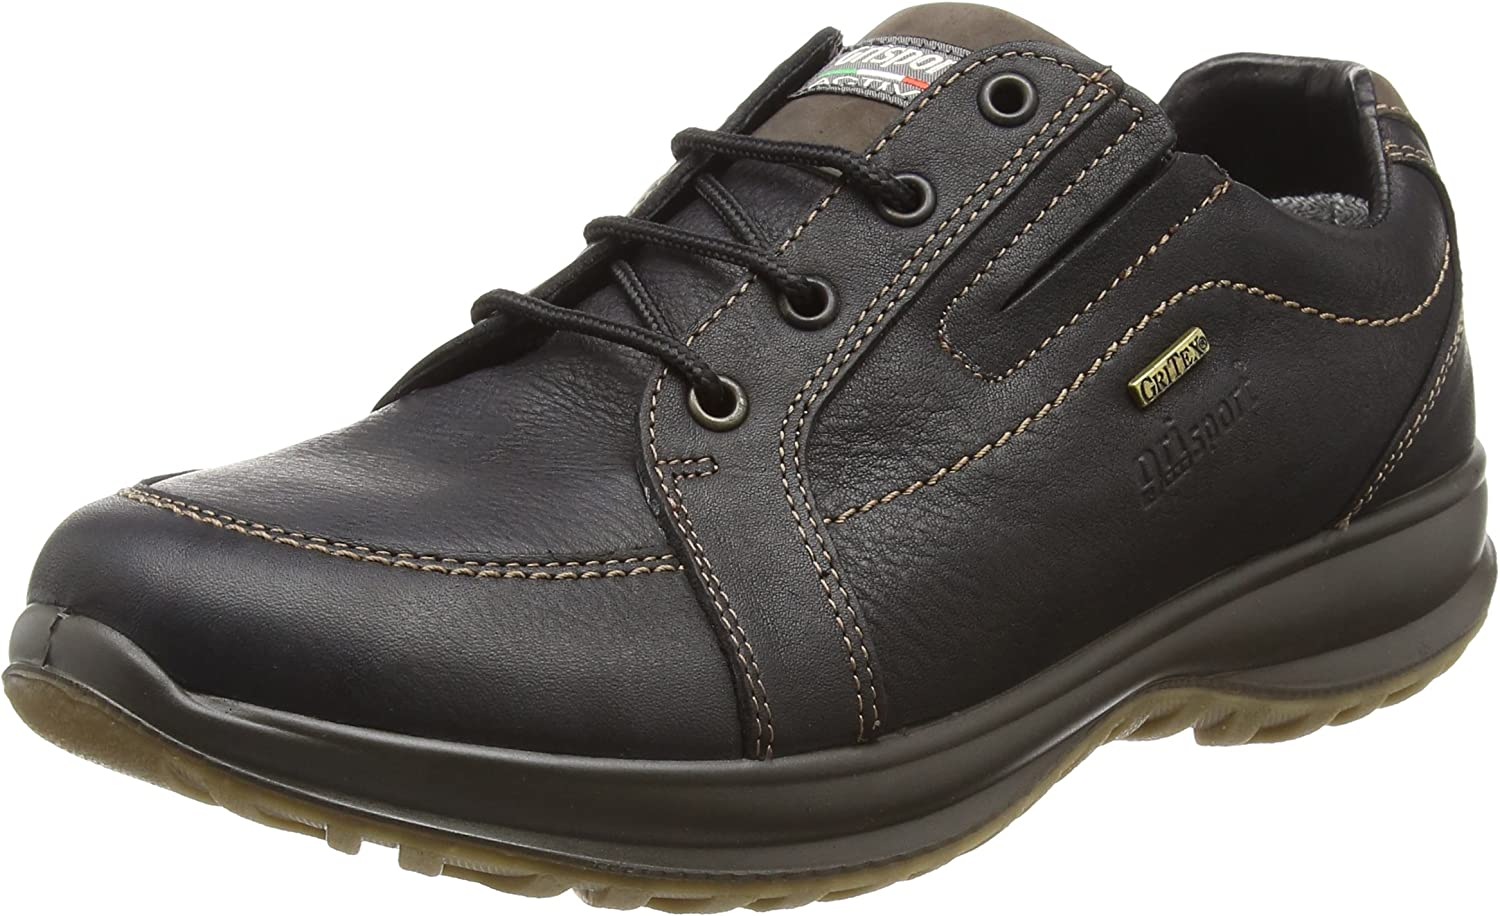 greyport 'Ayr' Active Air, Water-Resistant Italian Leather Comfort shoes Black